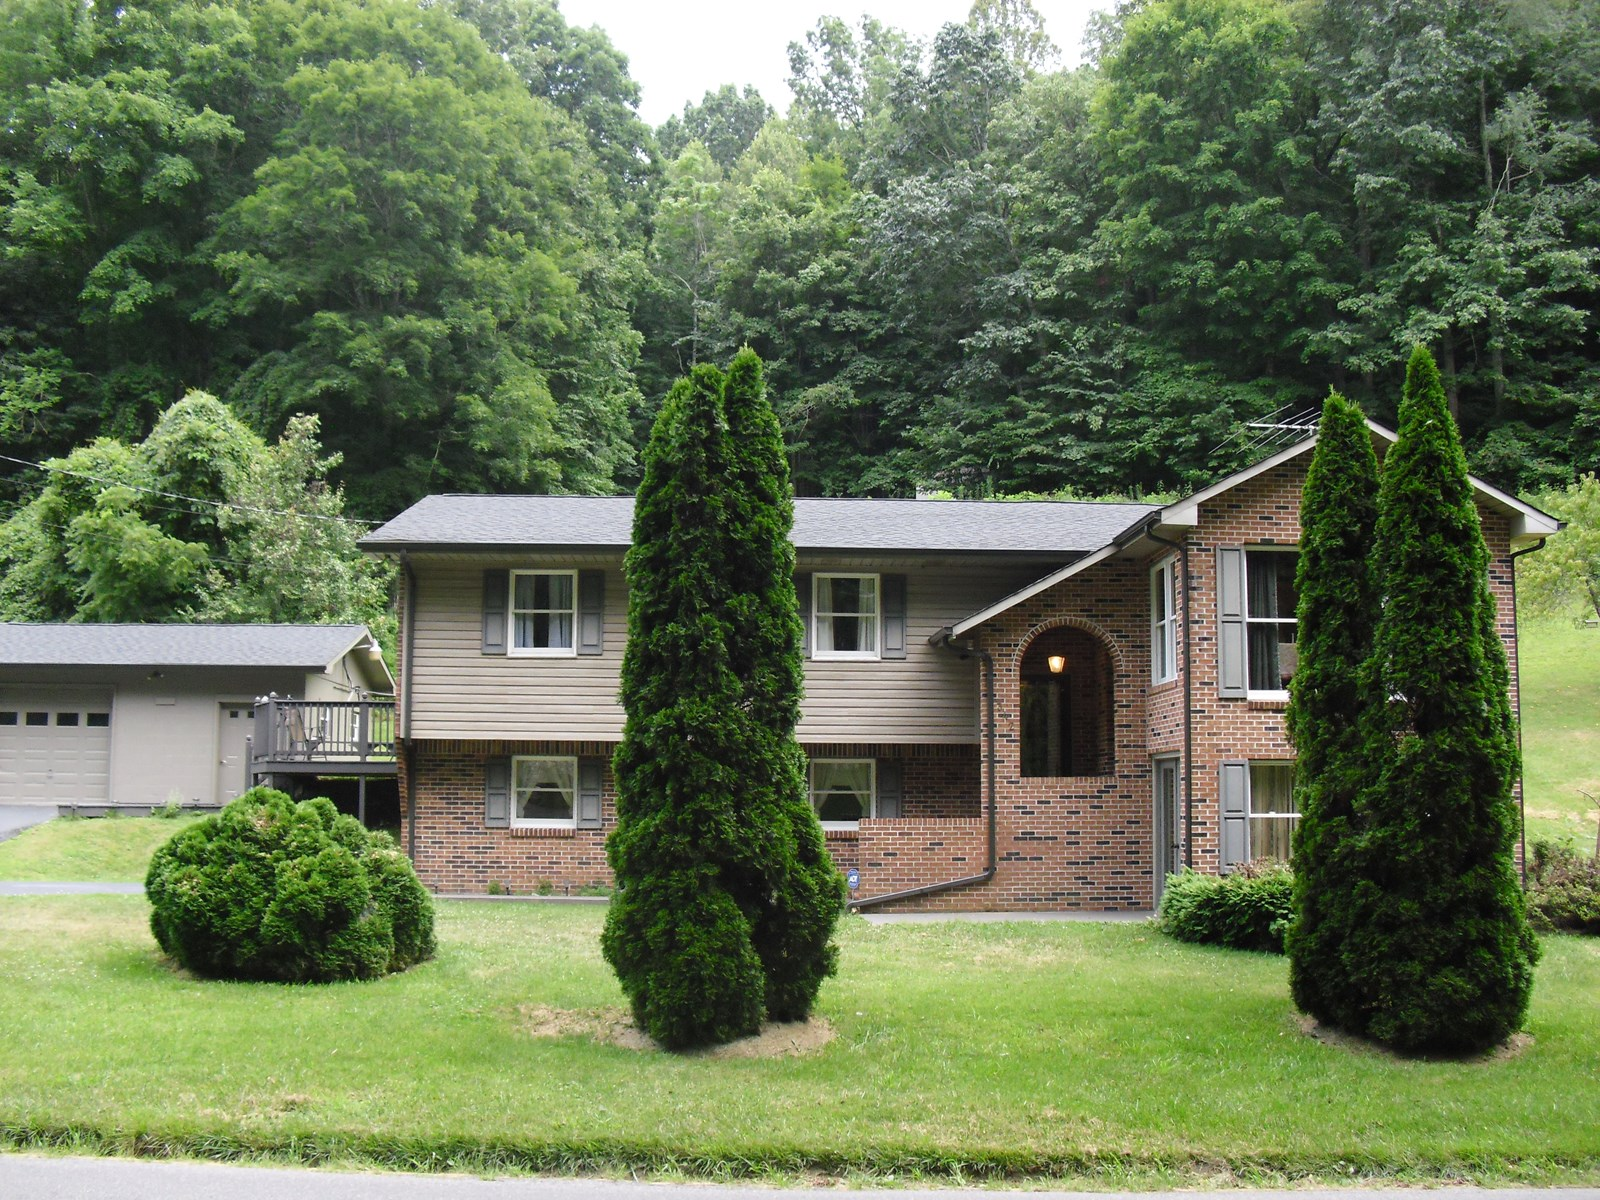 Beautiful Brick Home on 11+ acres, Chilhowie, VA!